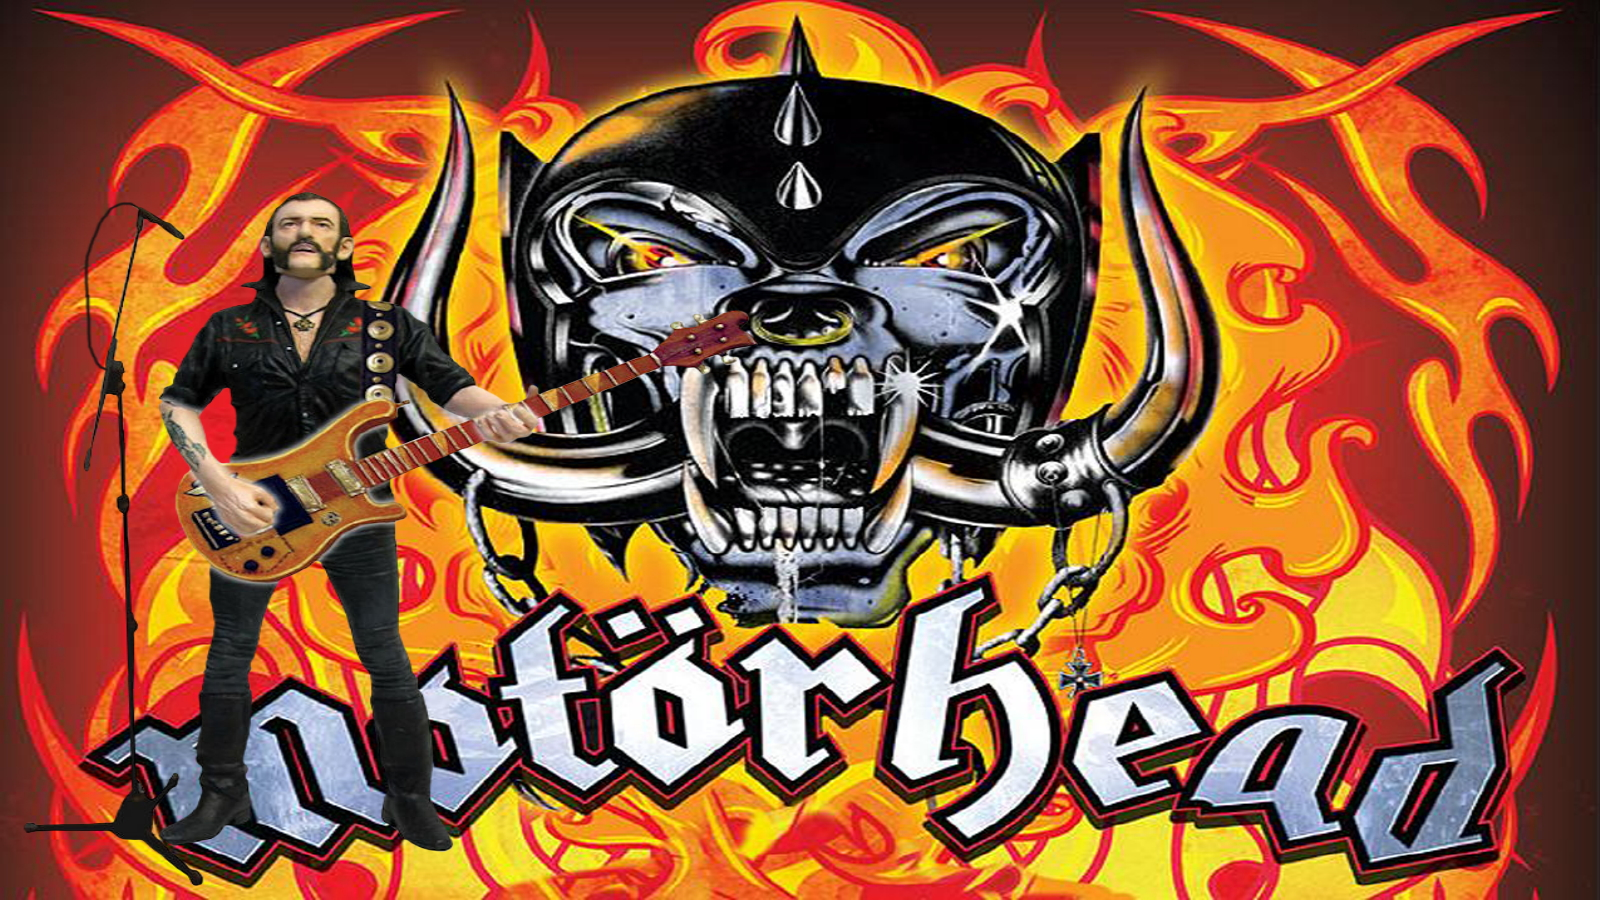 motorhead wallpaper iphone 5